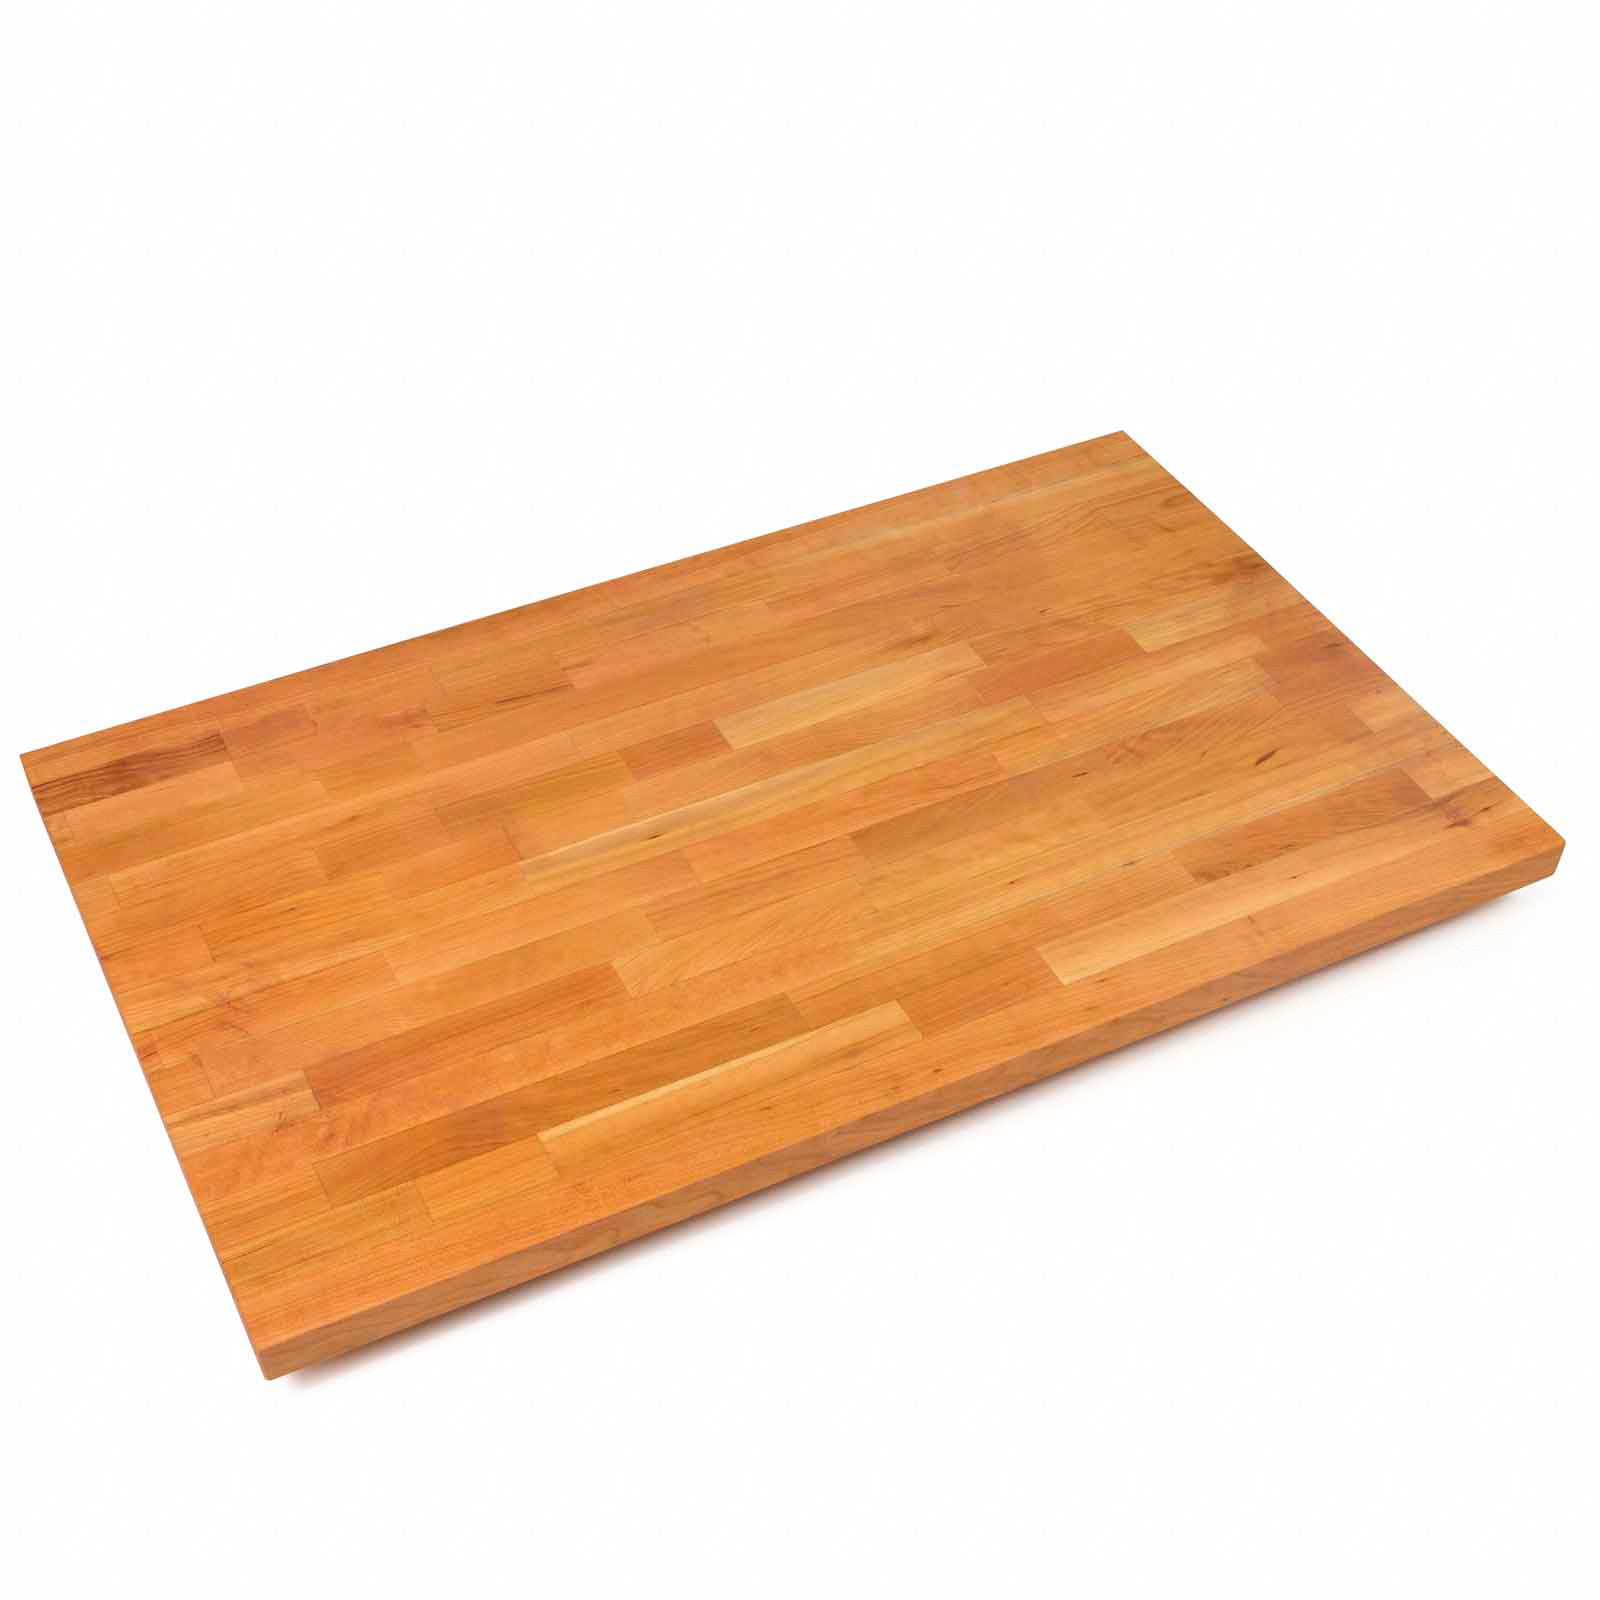 "John Boos 1 1/2"" Thick Blended Cherry Butcher Block Countertop - 36"" Wide"